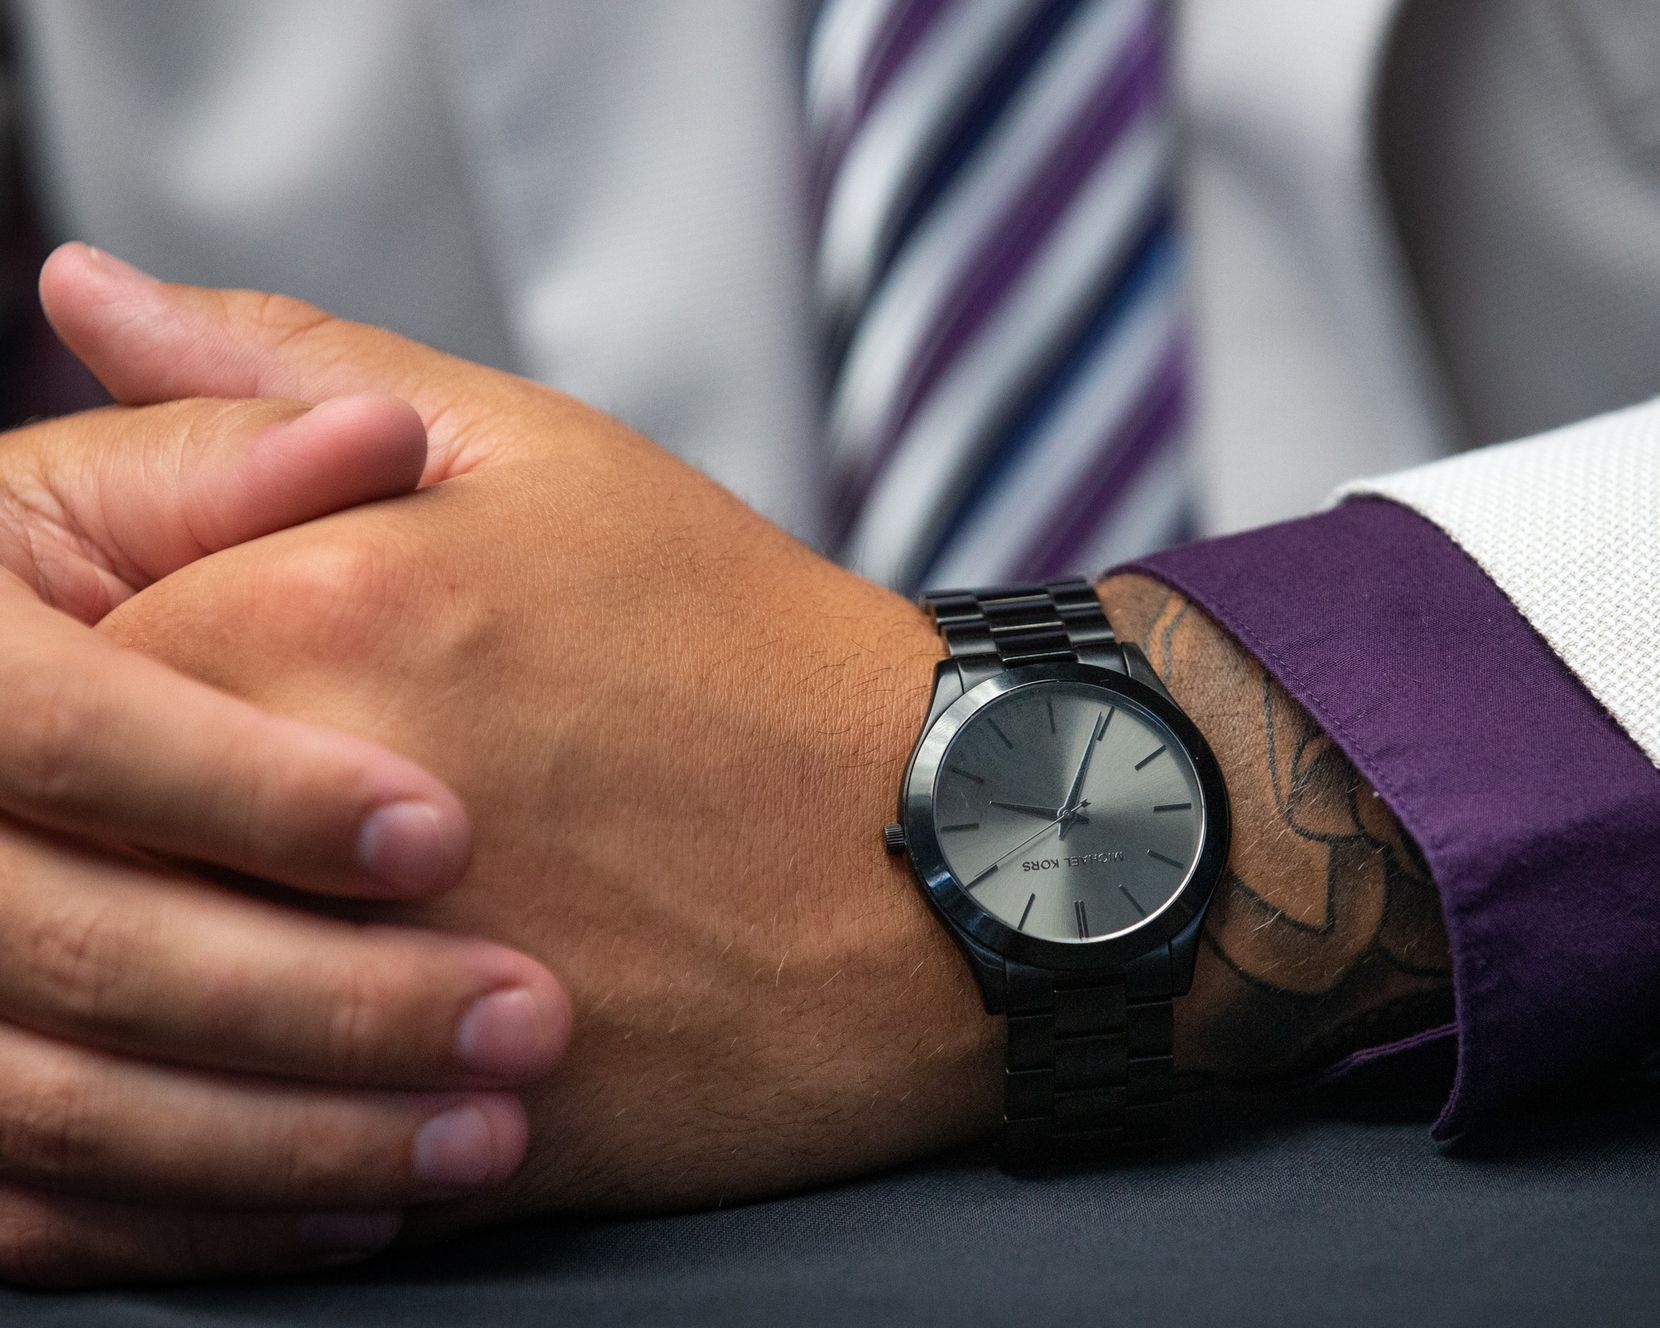 Trey Dishon, defensive tackle for Kansas State University, wears a Michael Kors watch during the Big 12 Conference Media Days event at the AT&T Stadium in Arlington on July 16, 2019.